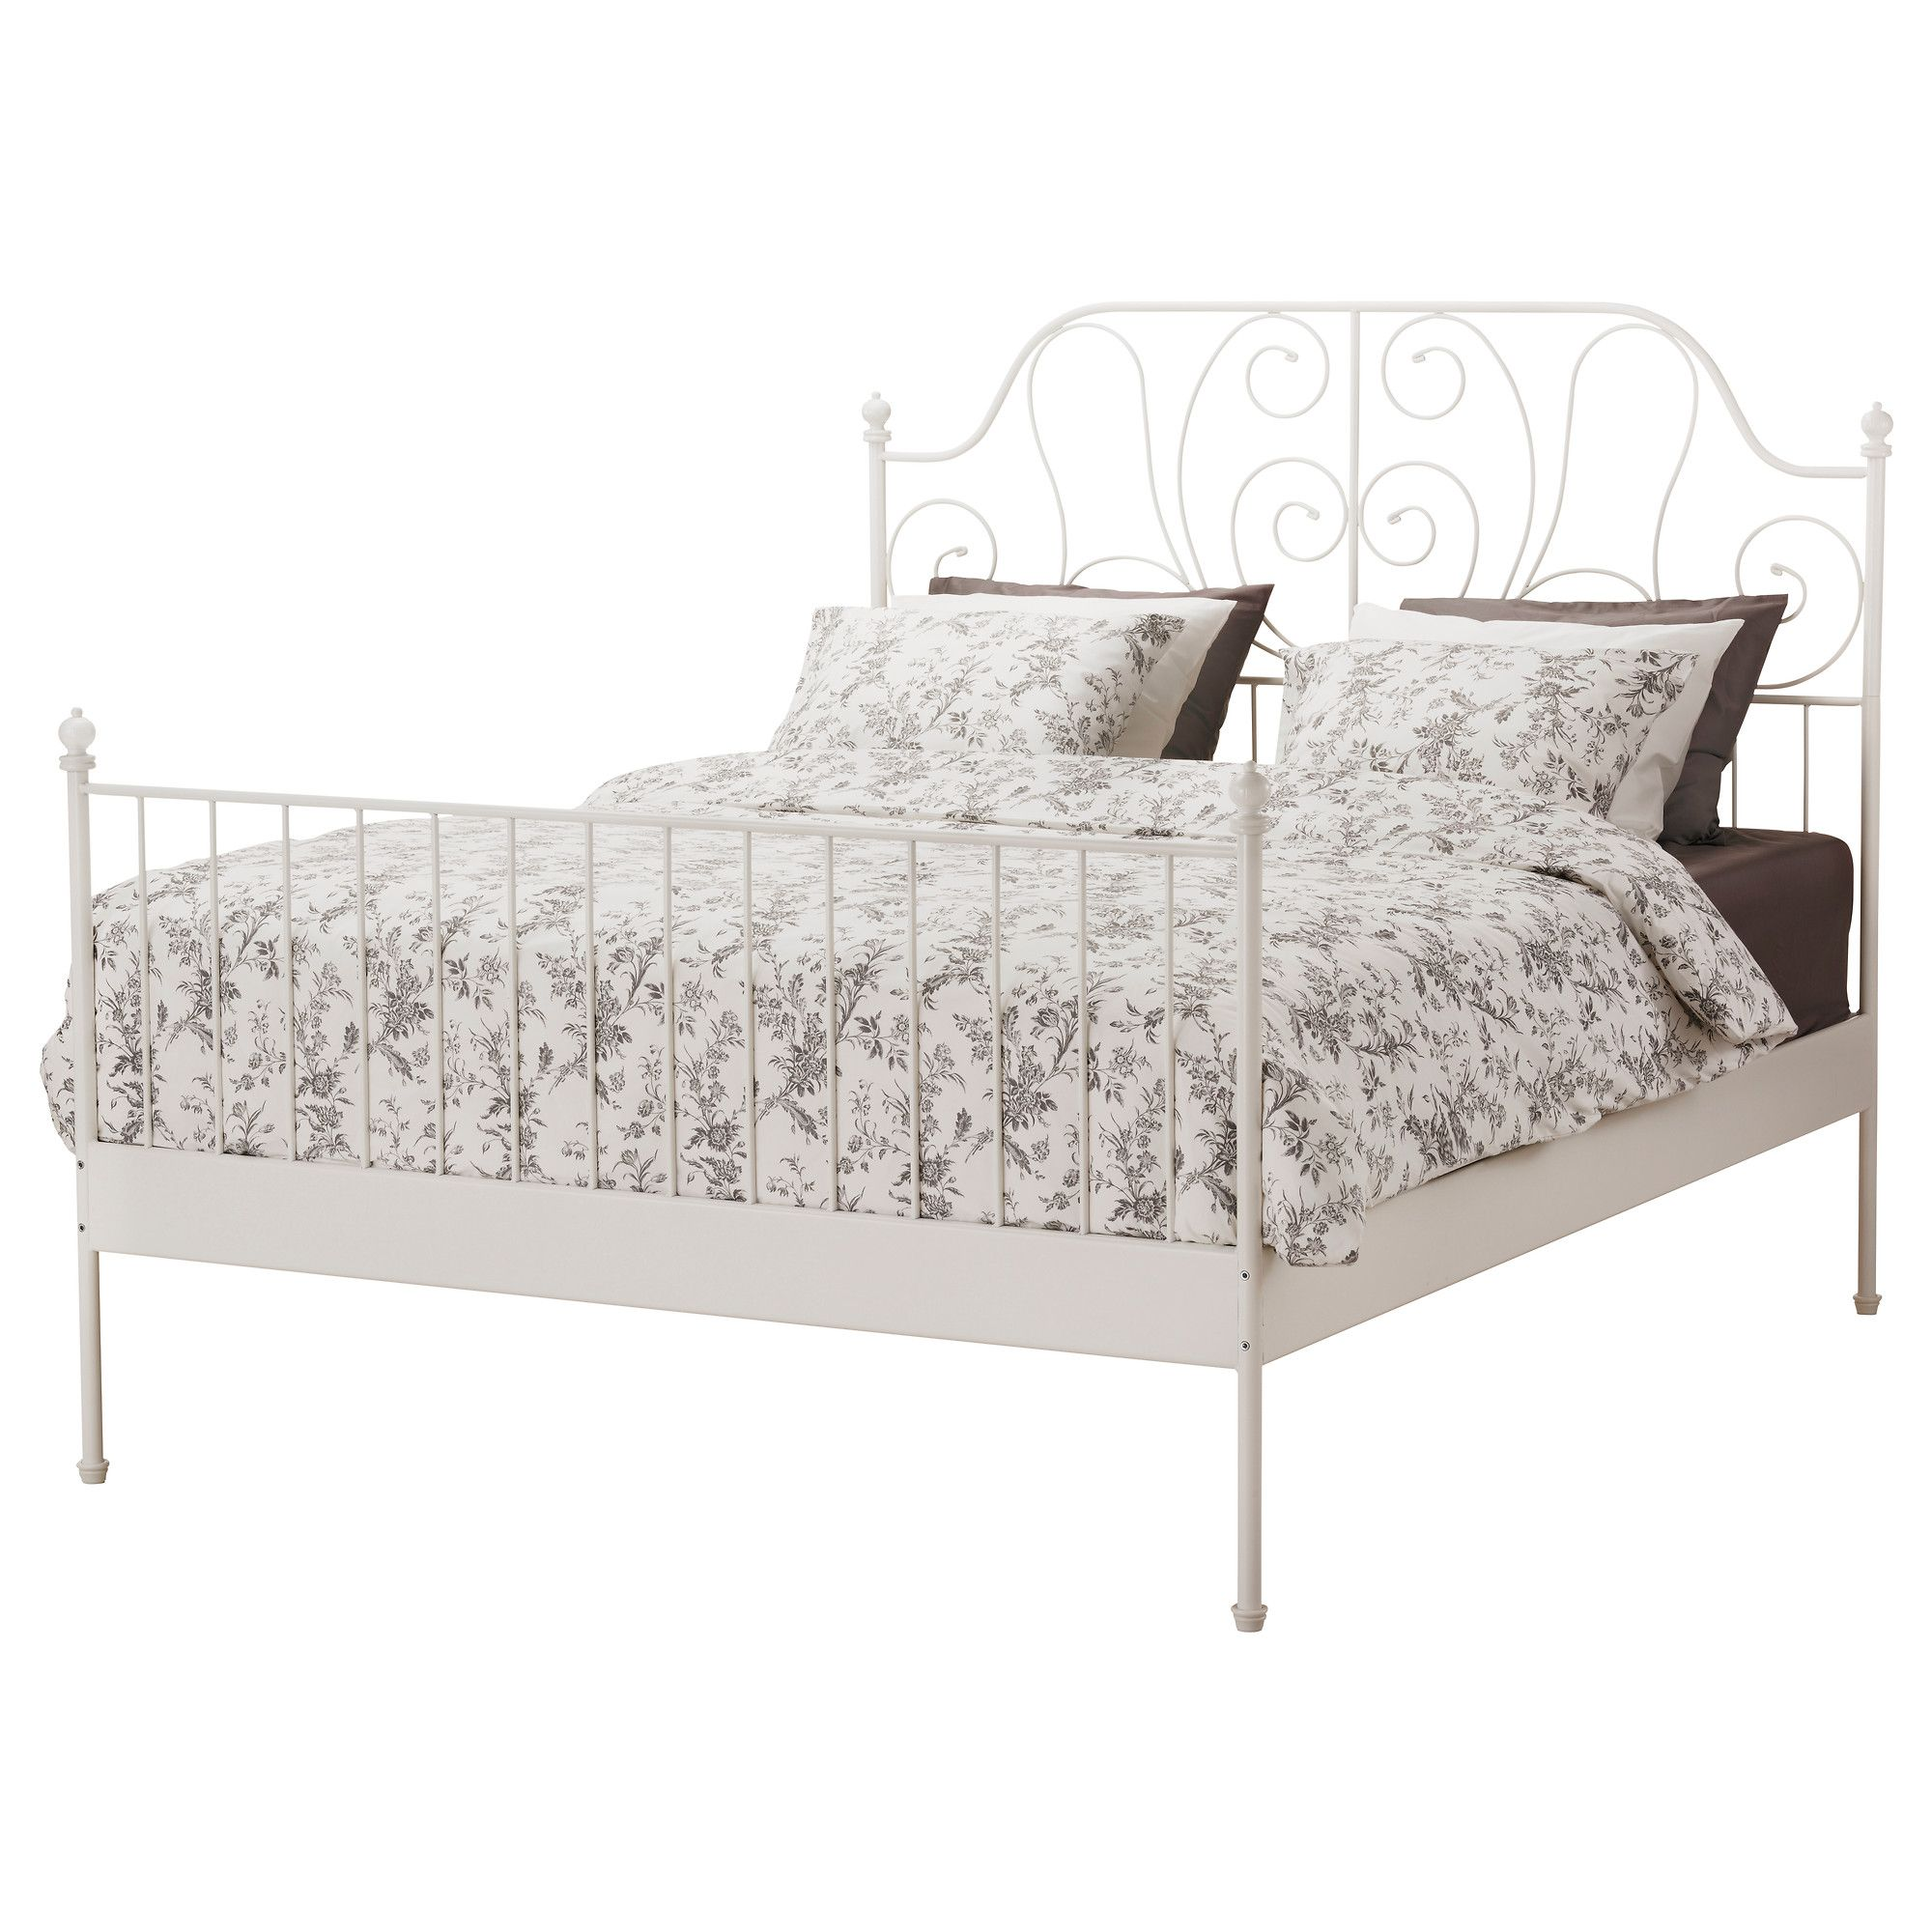 Ikea Us Furniture And Home Furnishings Ikea Bed Ikea Bed Frames Full Bed Frame